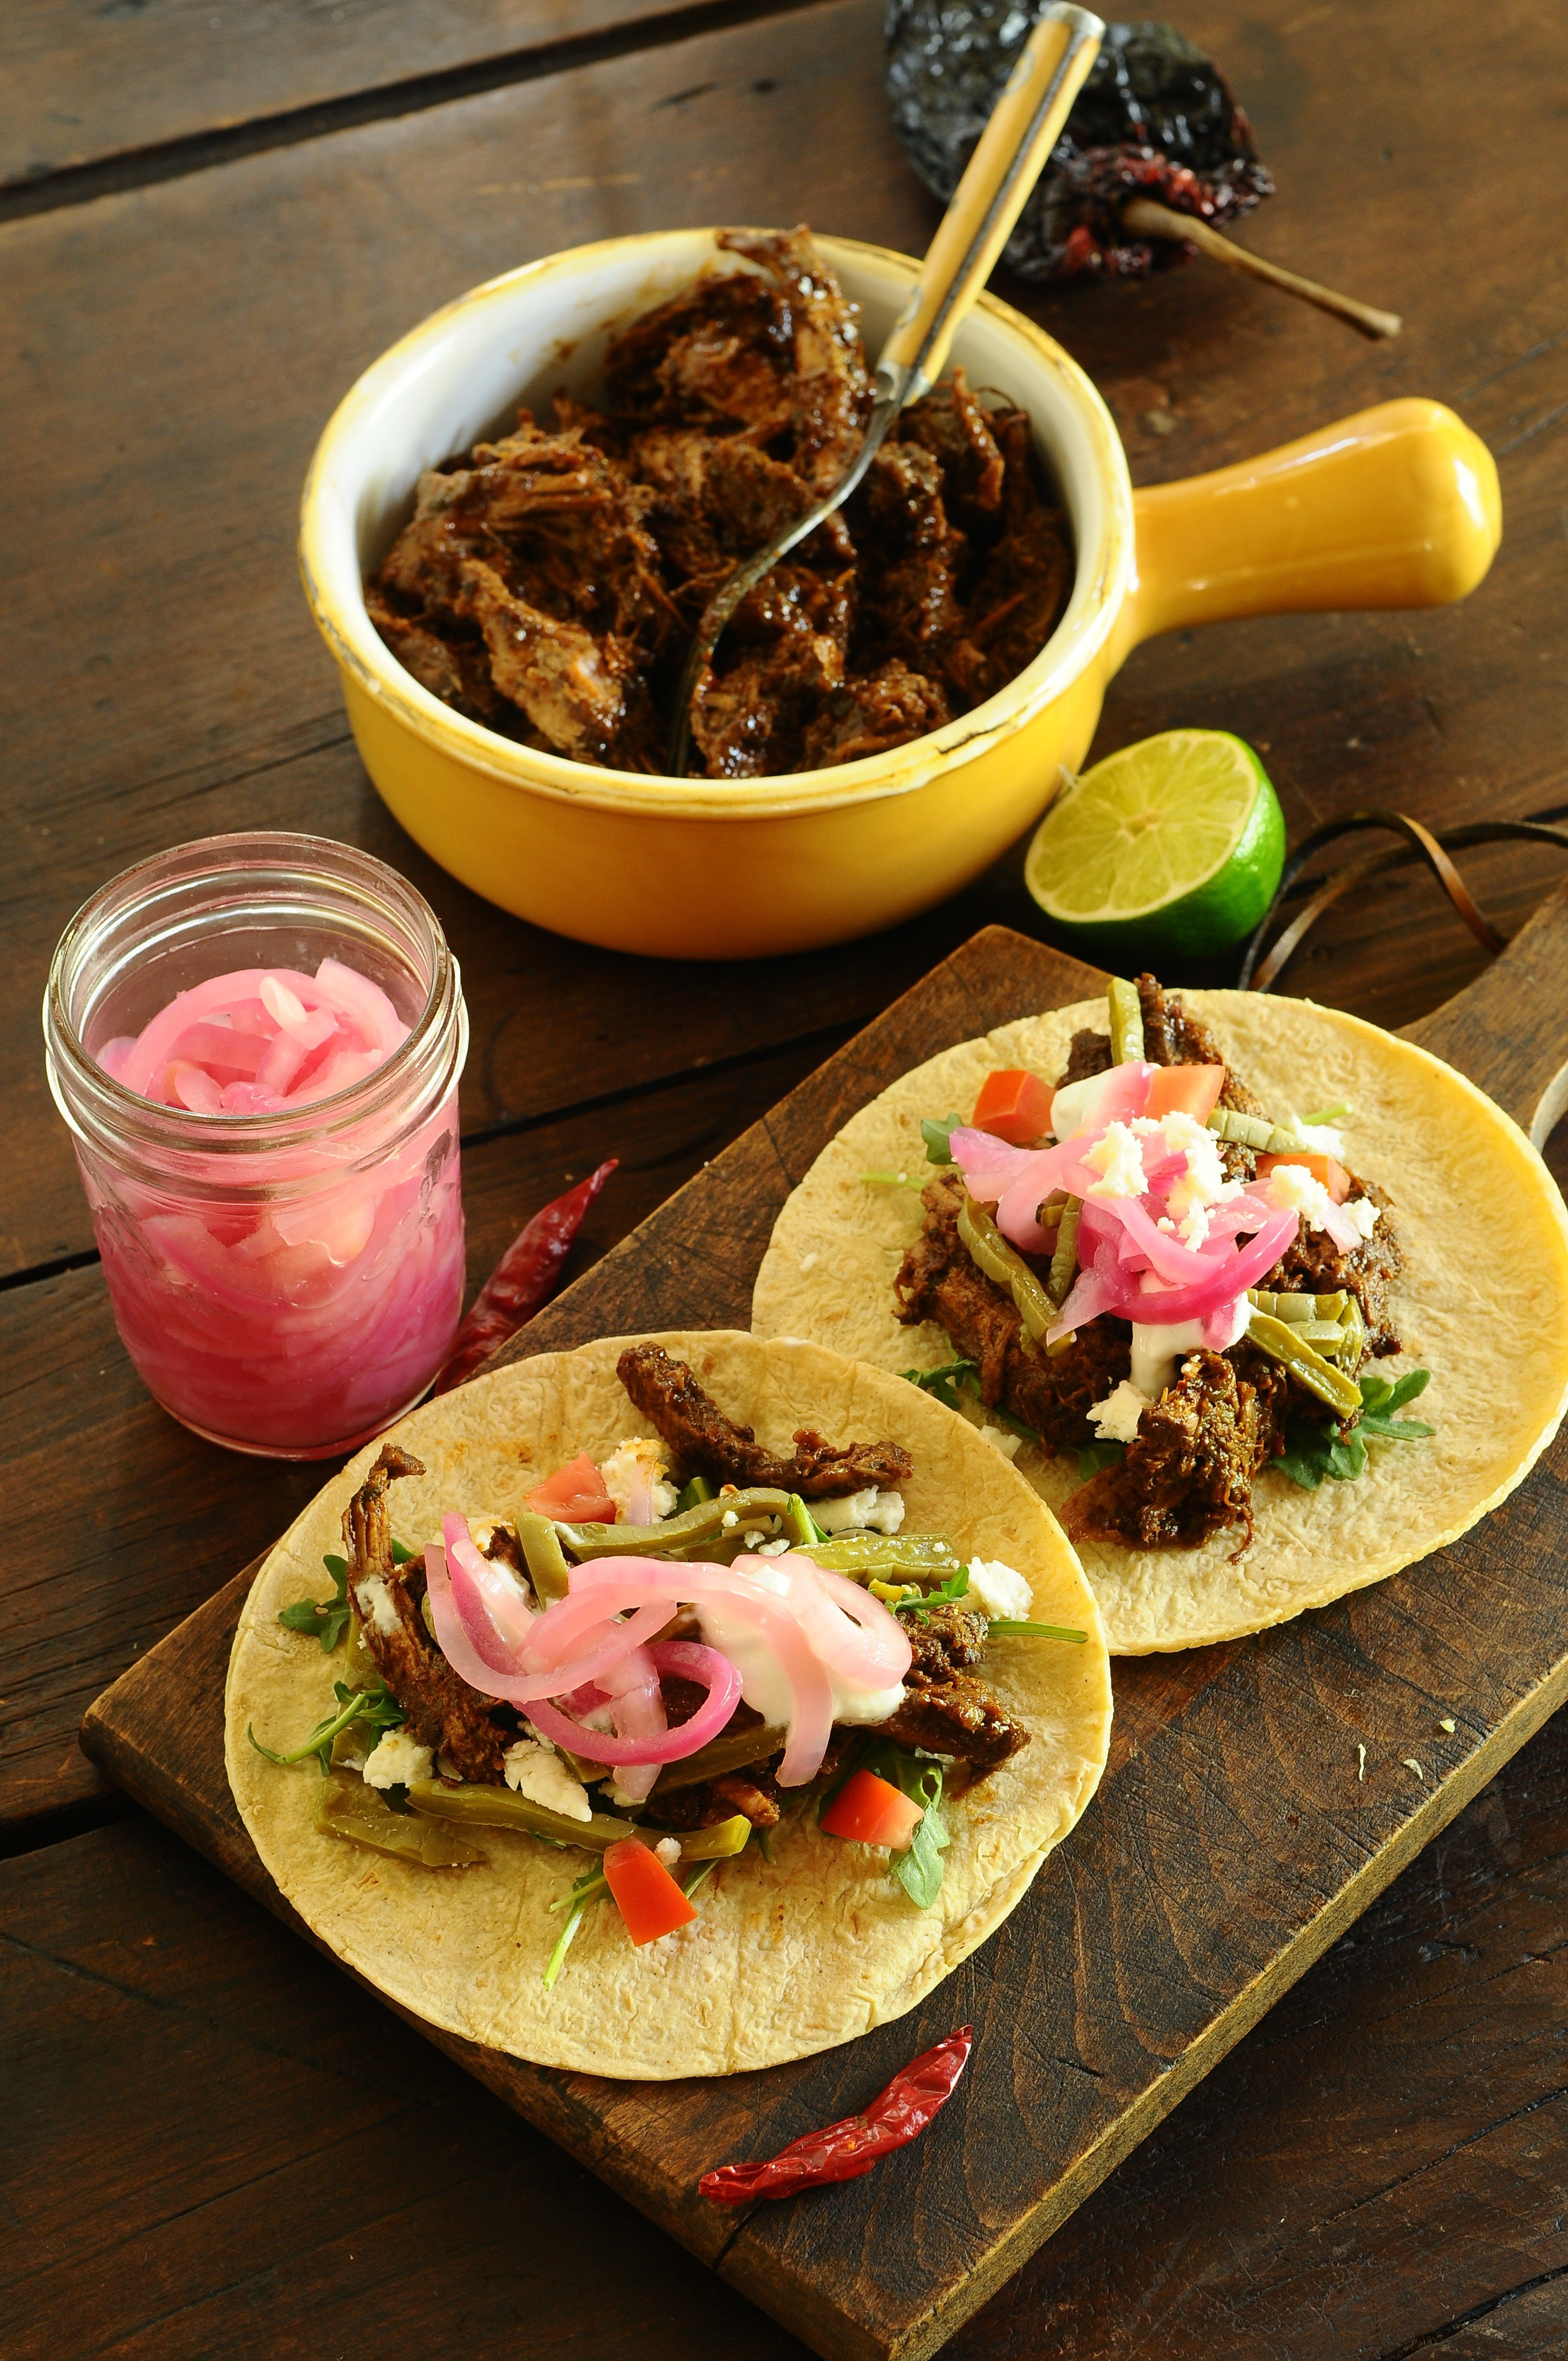 Wild boar taco with Nopales salad and pickled red onions